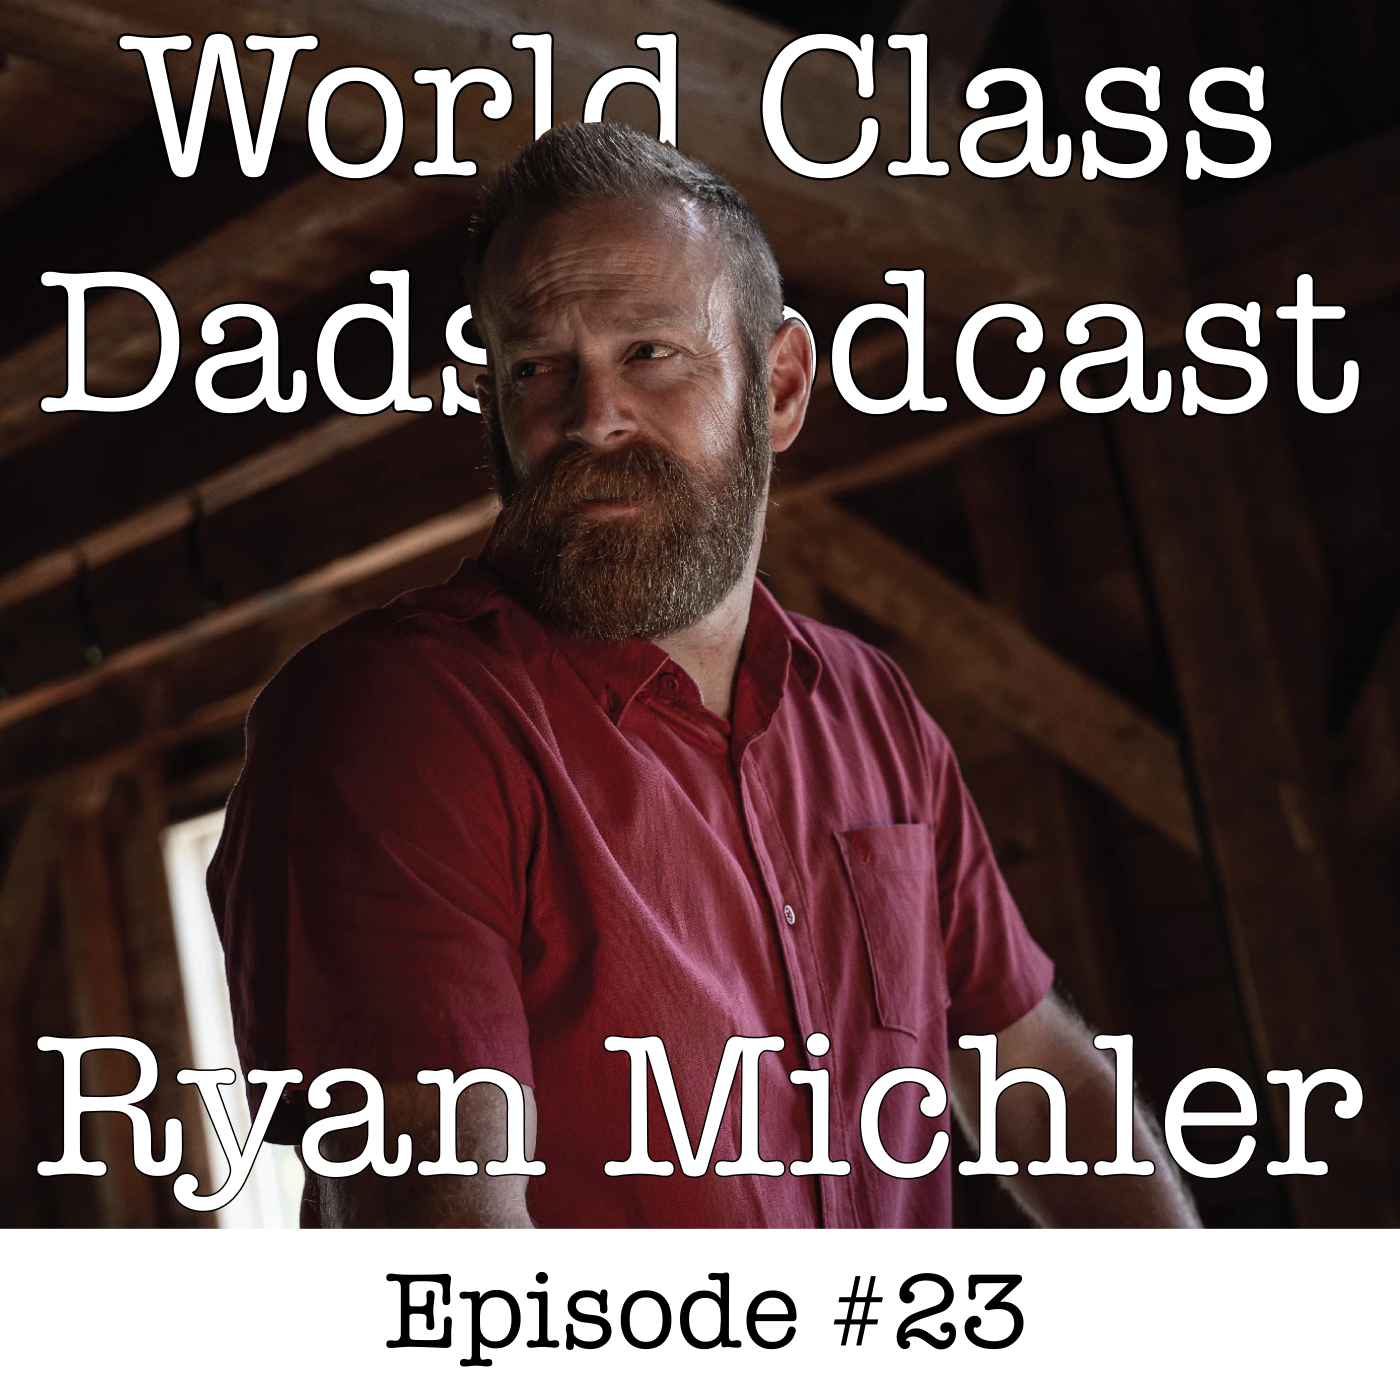 RYAN MICHLER: Living an Integrated Life